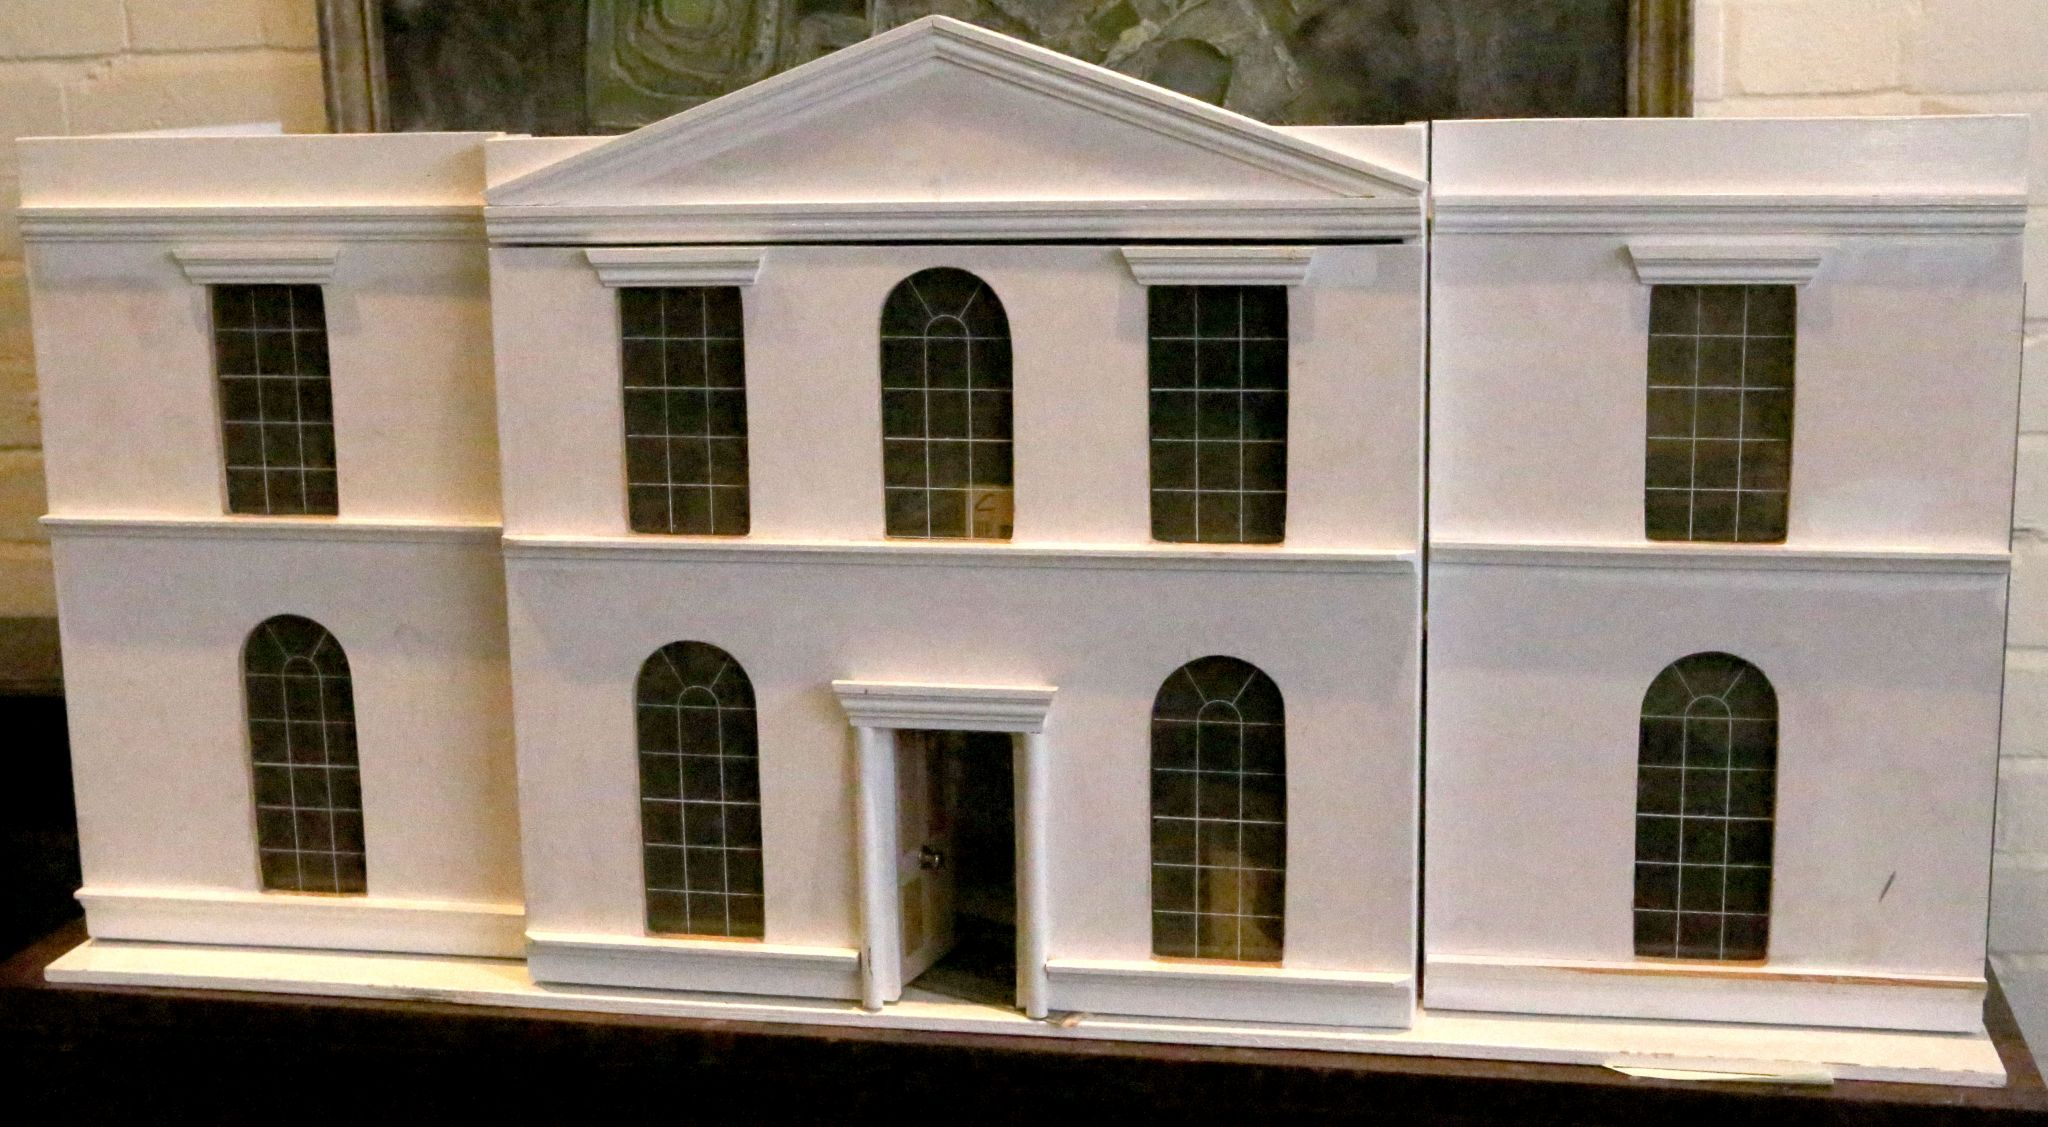 Lot 149 - A large painted wooden Palladian style dolls house with nine windows and & A large painted wooden Palladian style dolls house with nine ...